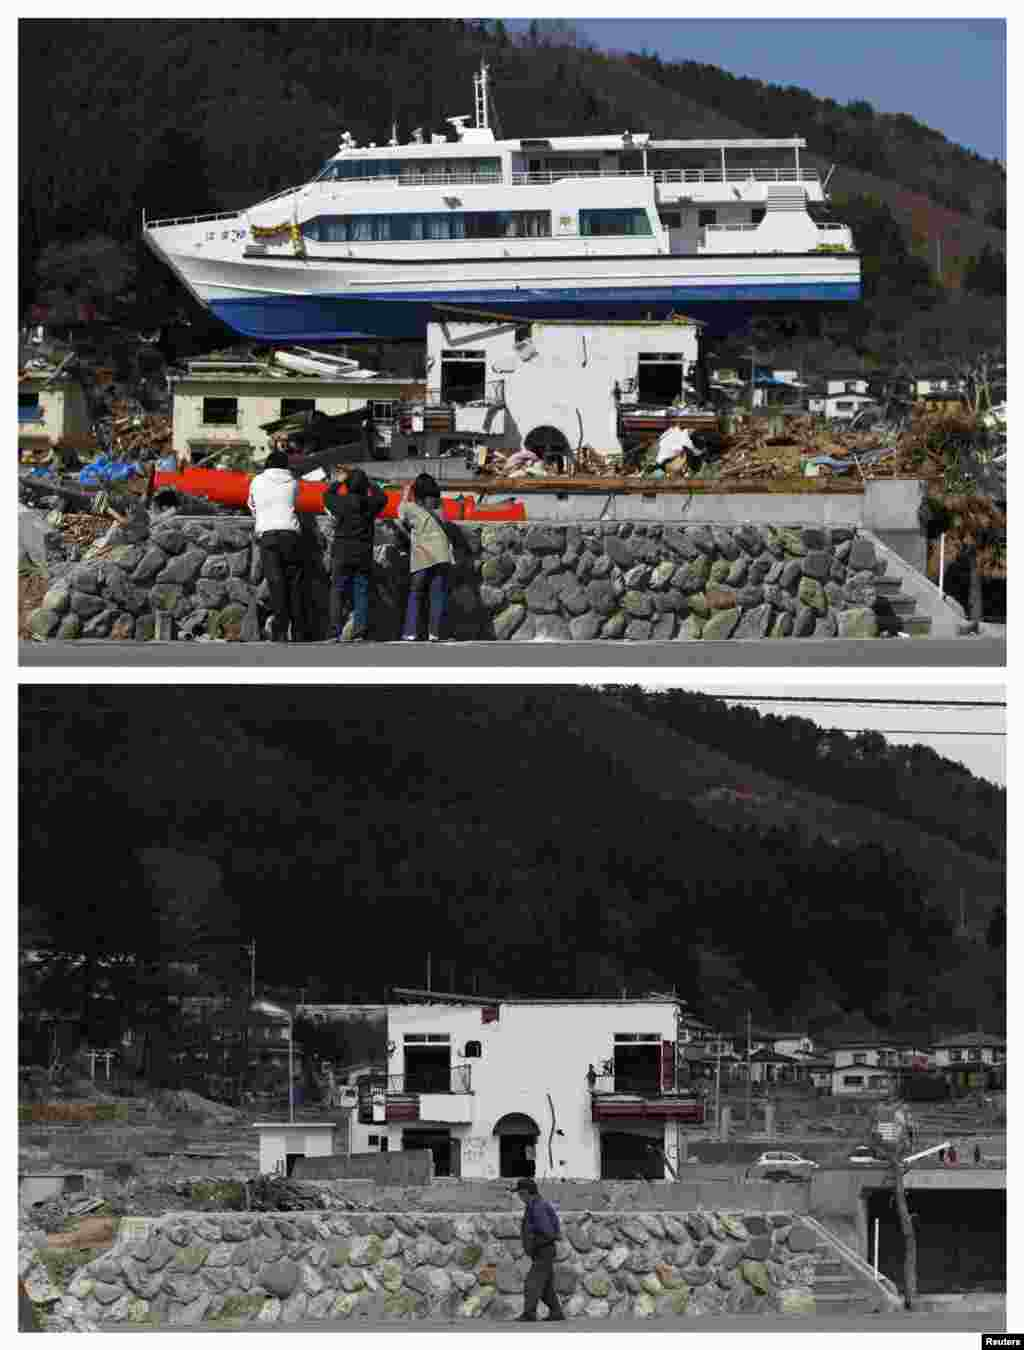 On top, people take pictures of a ship left on a building in Otsuchi, Iwate Prefecture, on April 17, 2011, and below on February 18, 2012